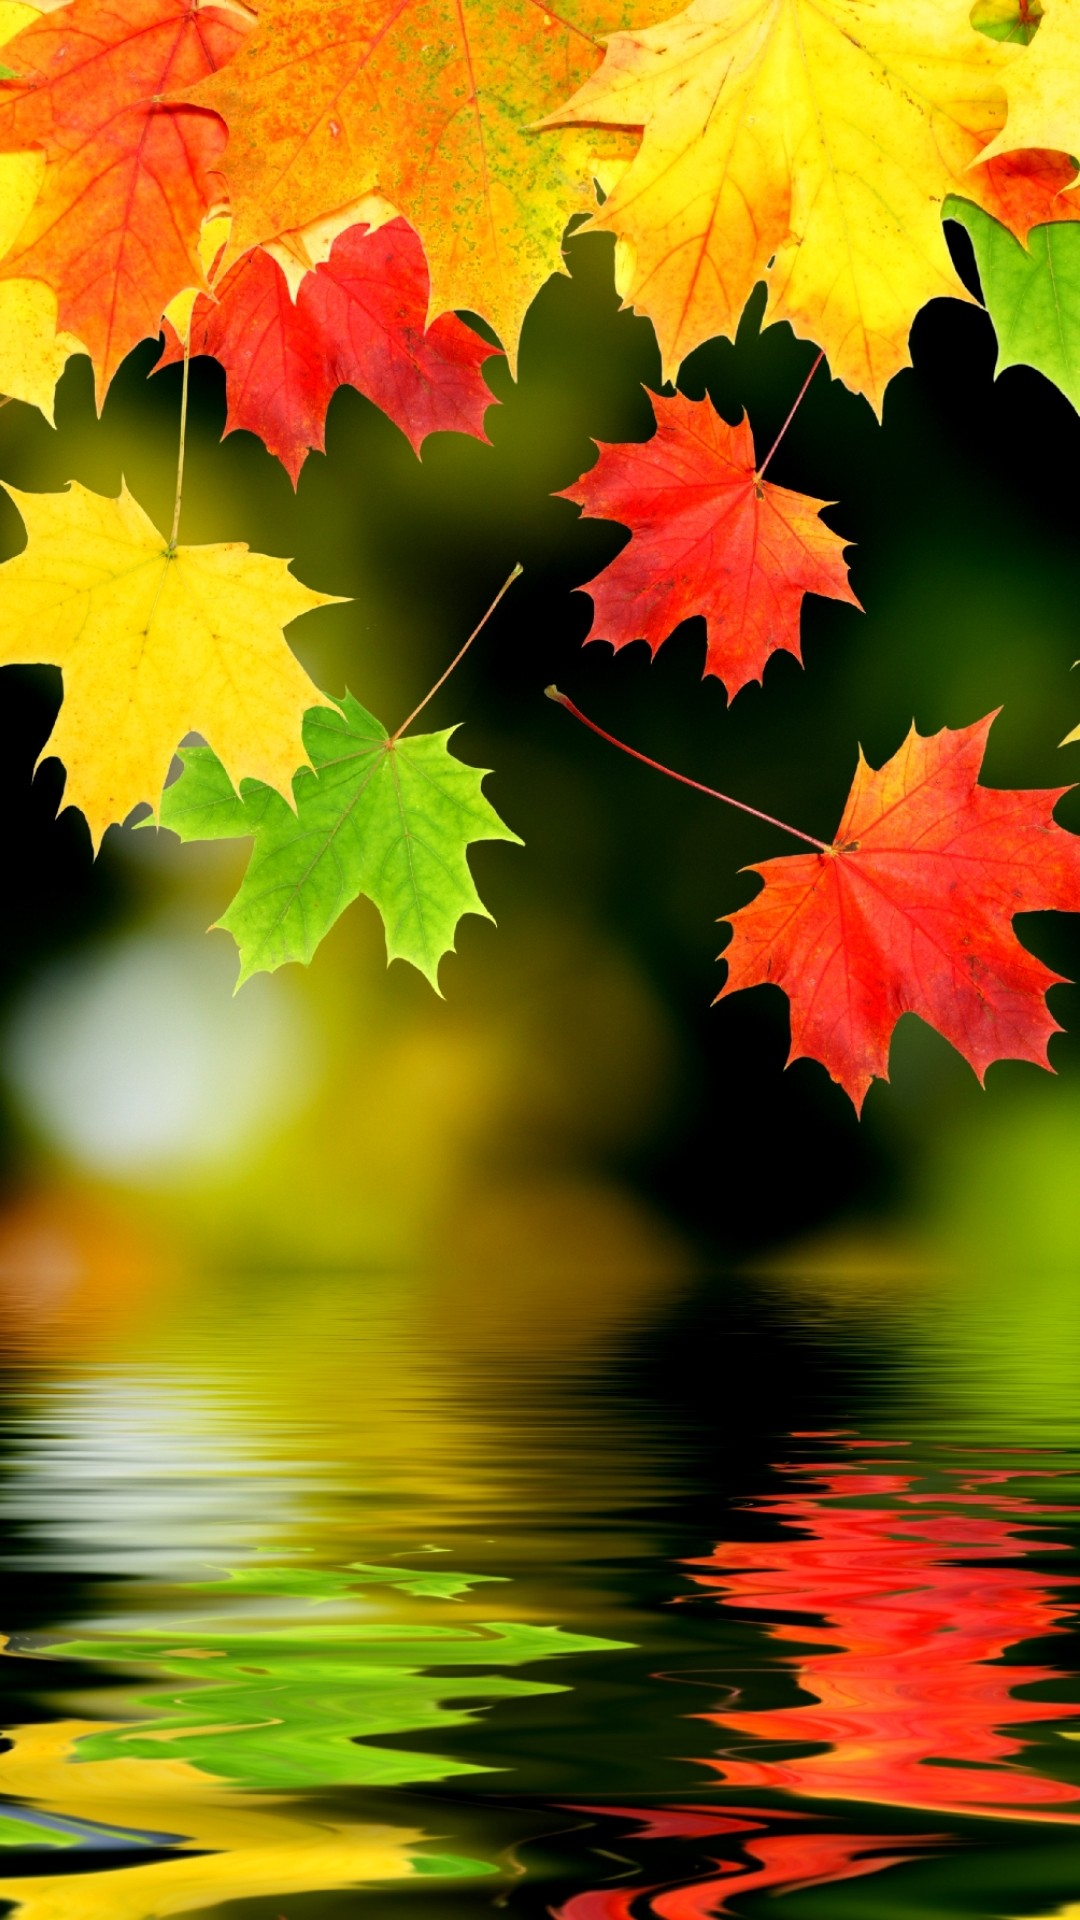 iphone 6 wallpaper fall, fall screensavers for iphone